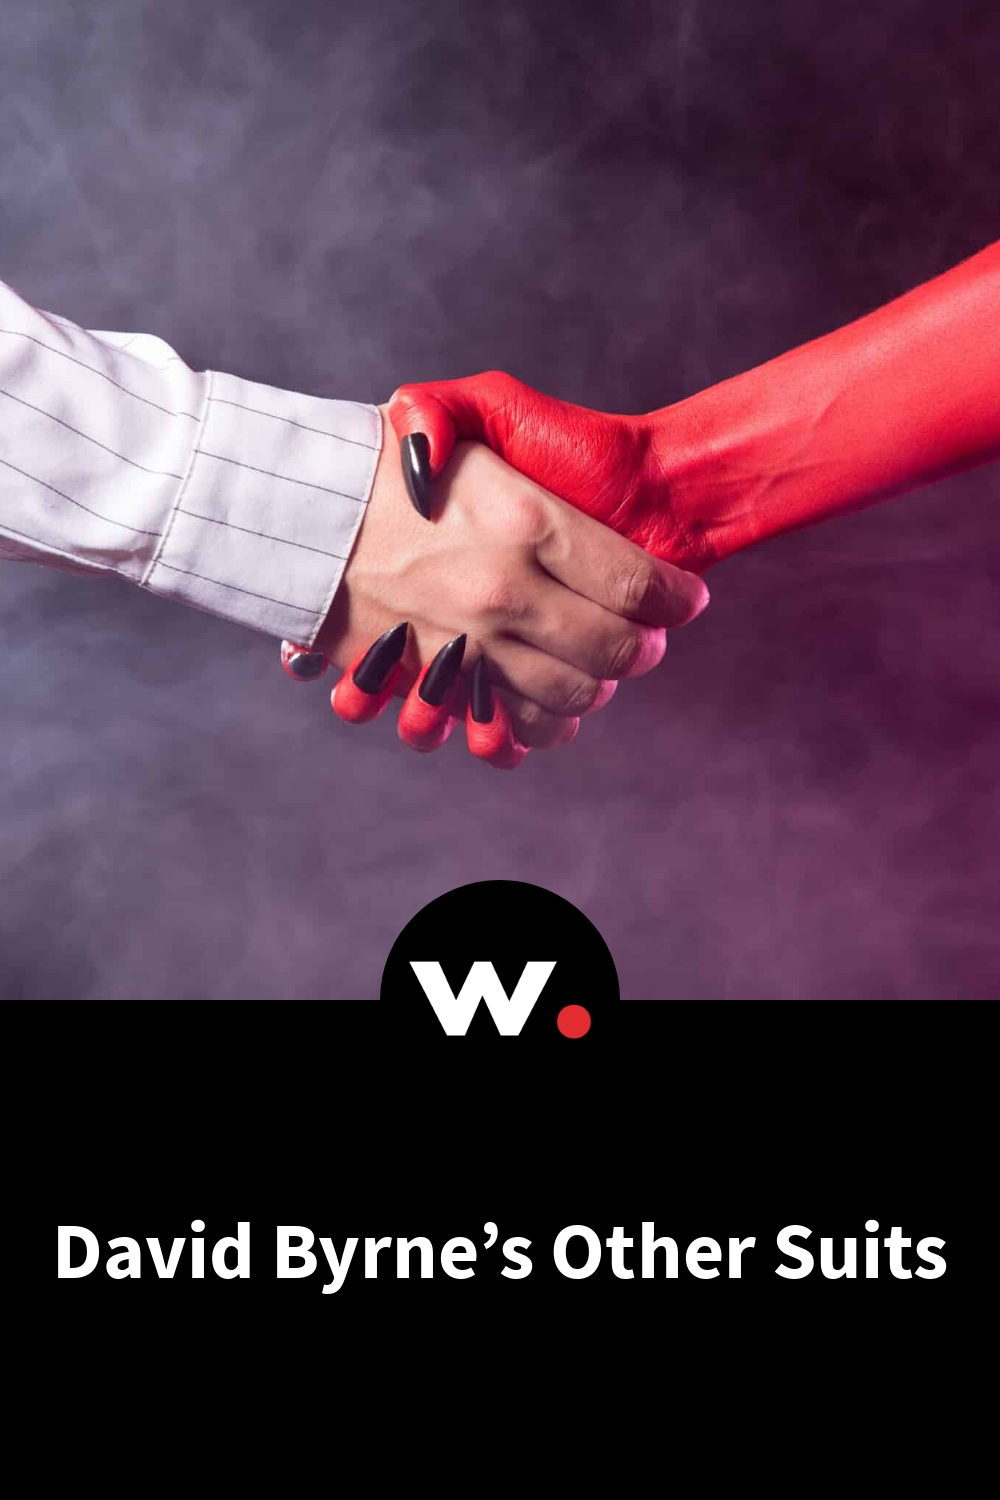 David Byrne's Other Suits